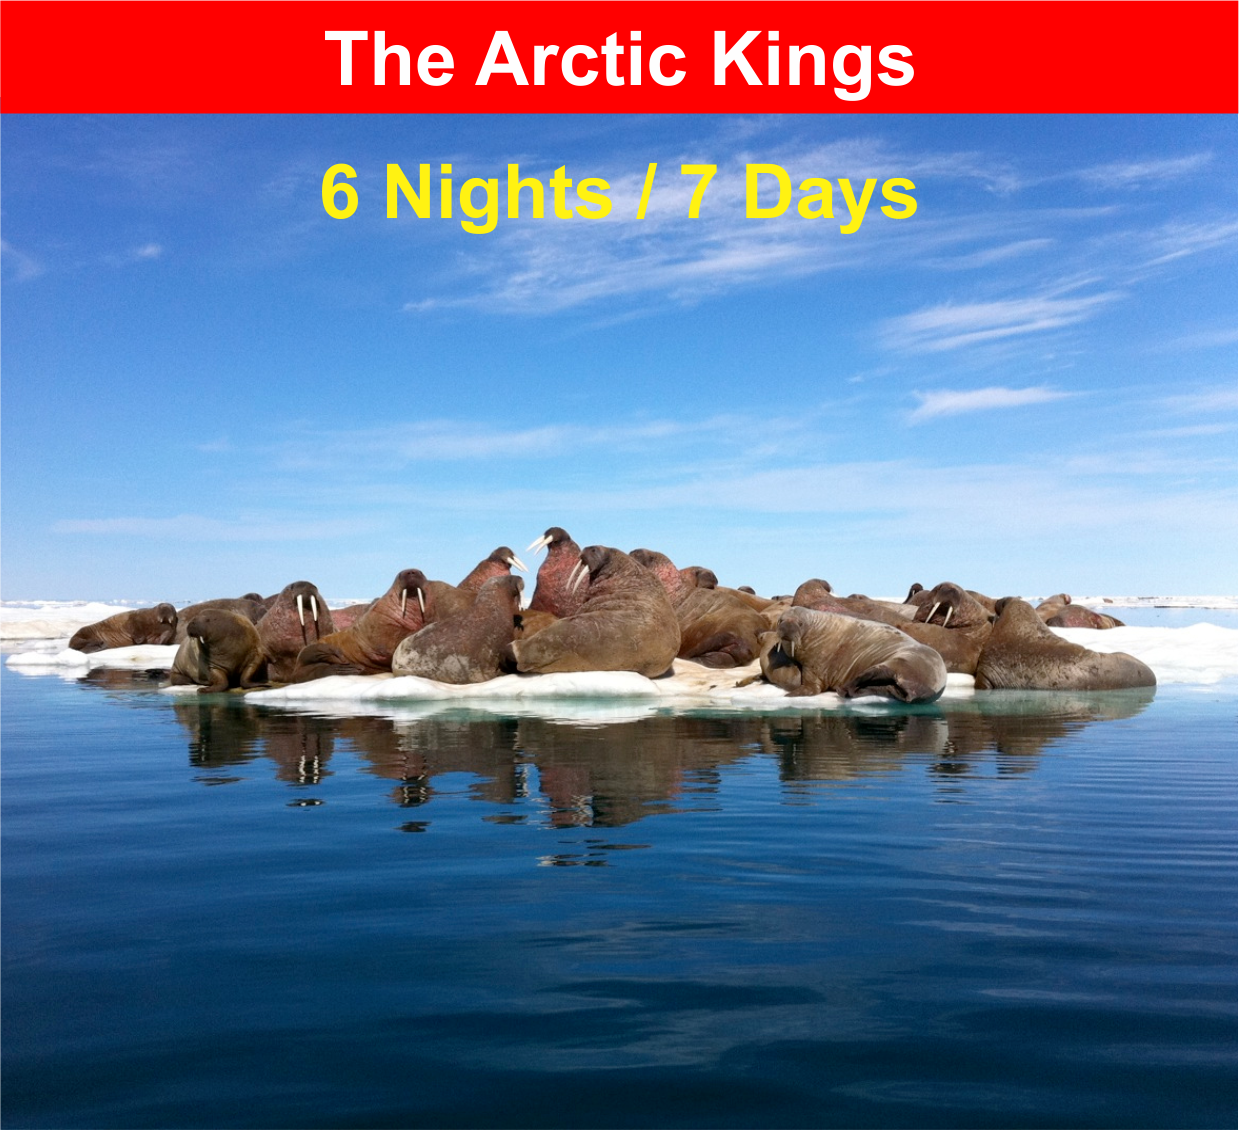 The Arctic Kings